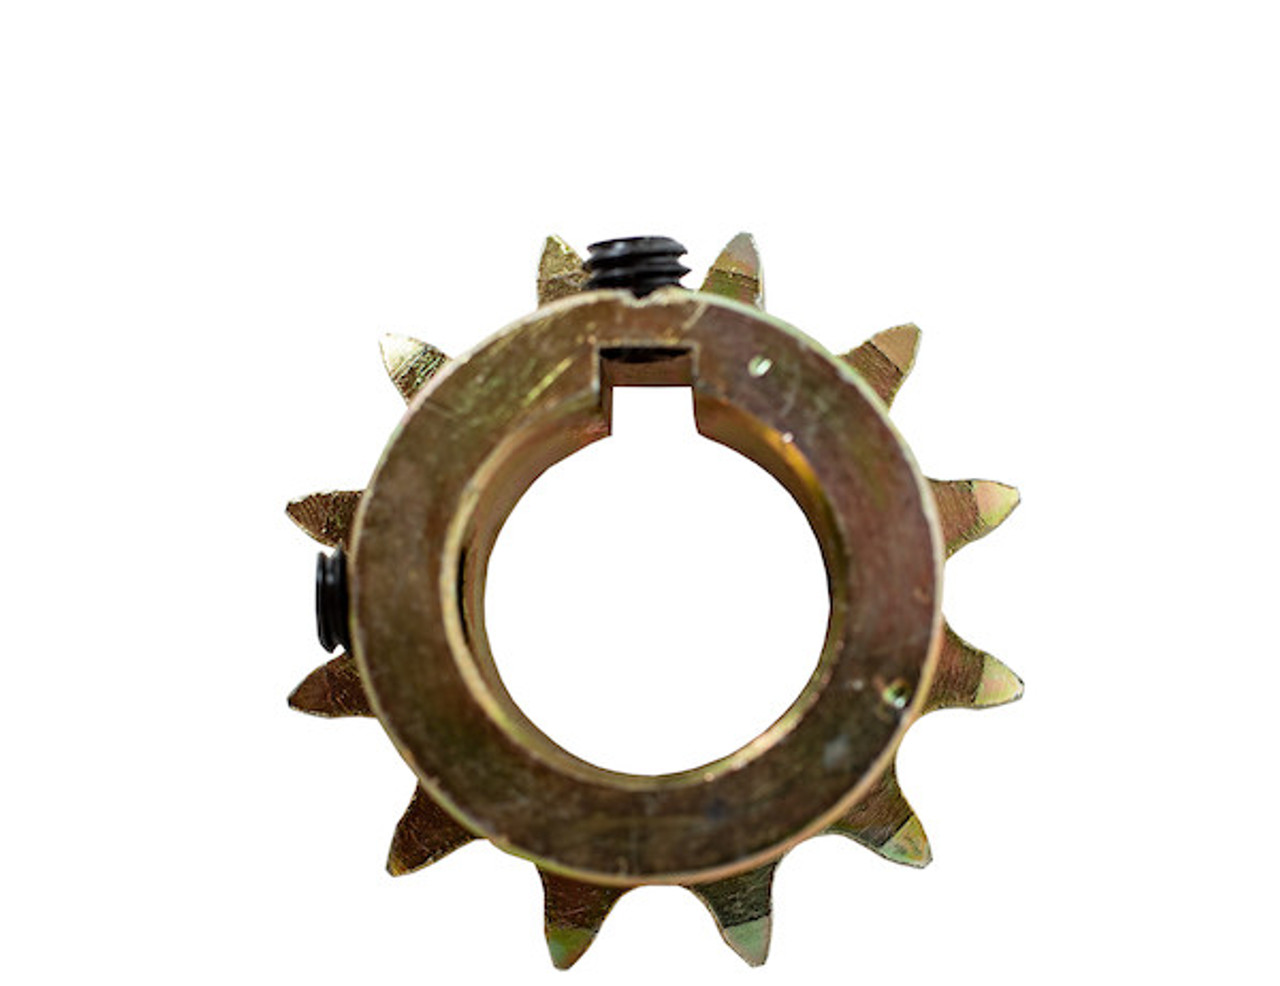 BUYERS 1411915 Replacement 1 Inch 12-Tooth Yellow Zinc Engine Sprocket With Set Screws For #40 Chain For SaltDogg Salt Spreader 1